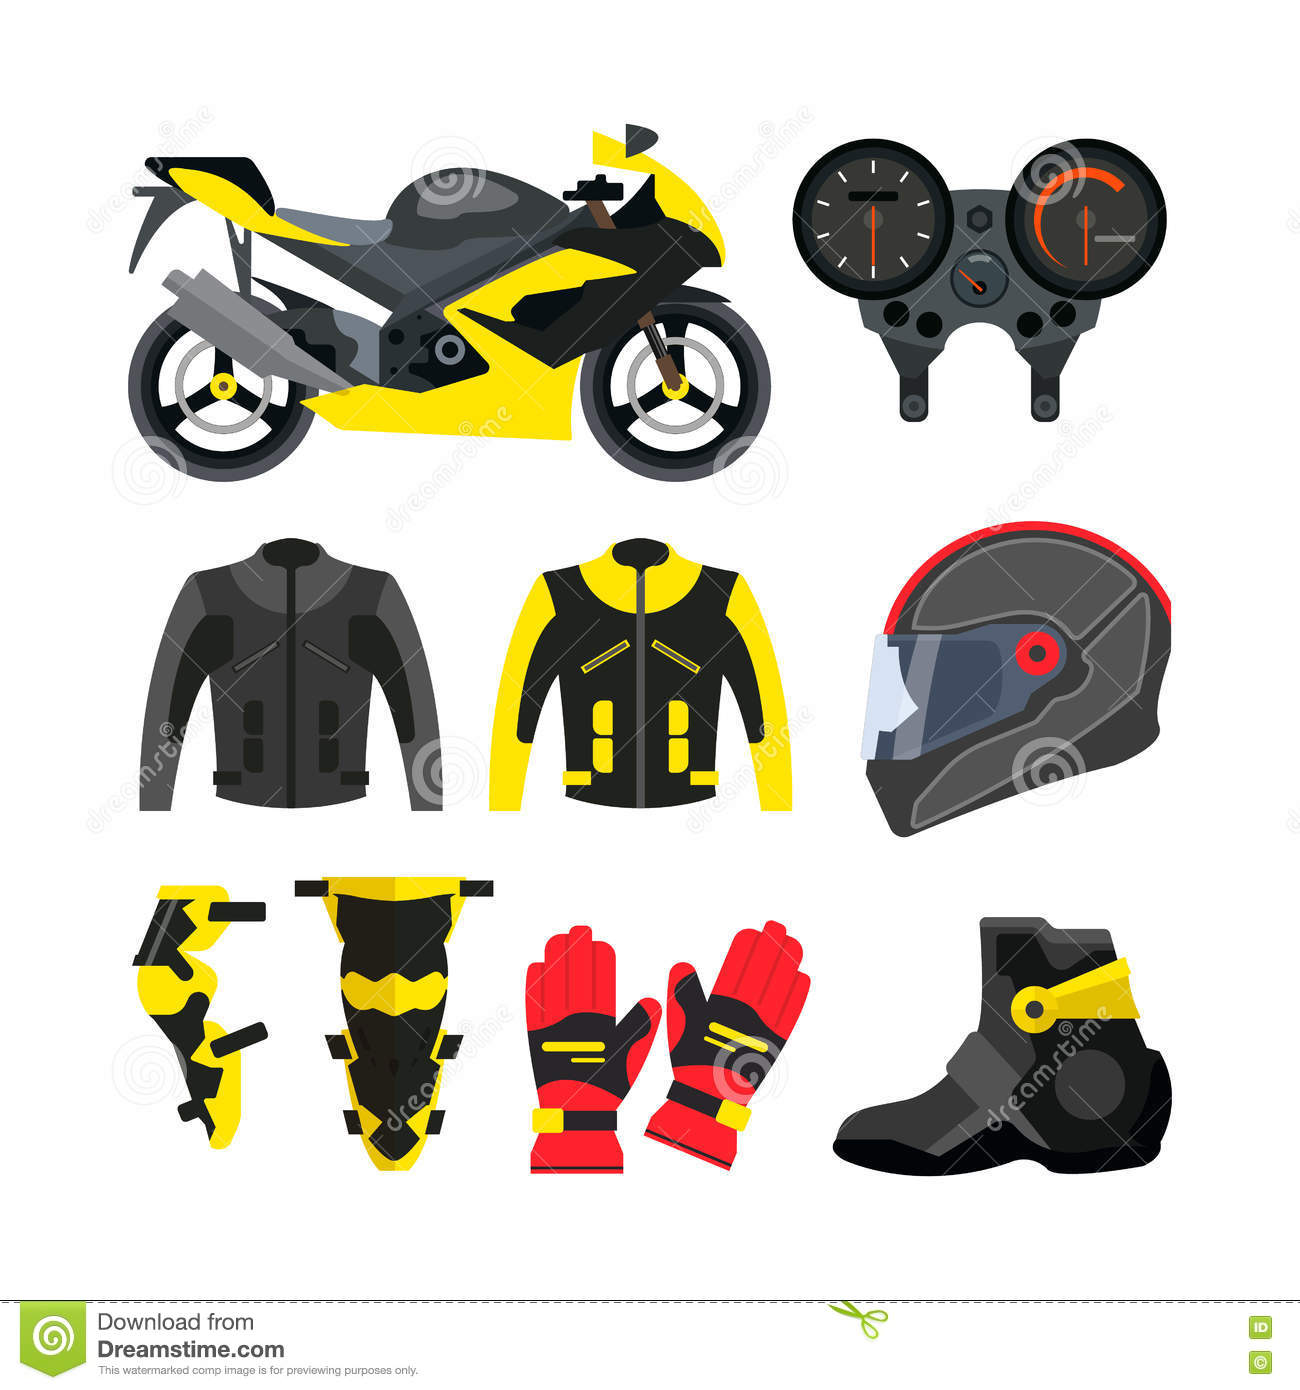 Motorcycle Parts In Delaware Mail: Motorcycle Helmet, Gloves And Boots. Royalty-Free Stock